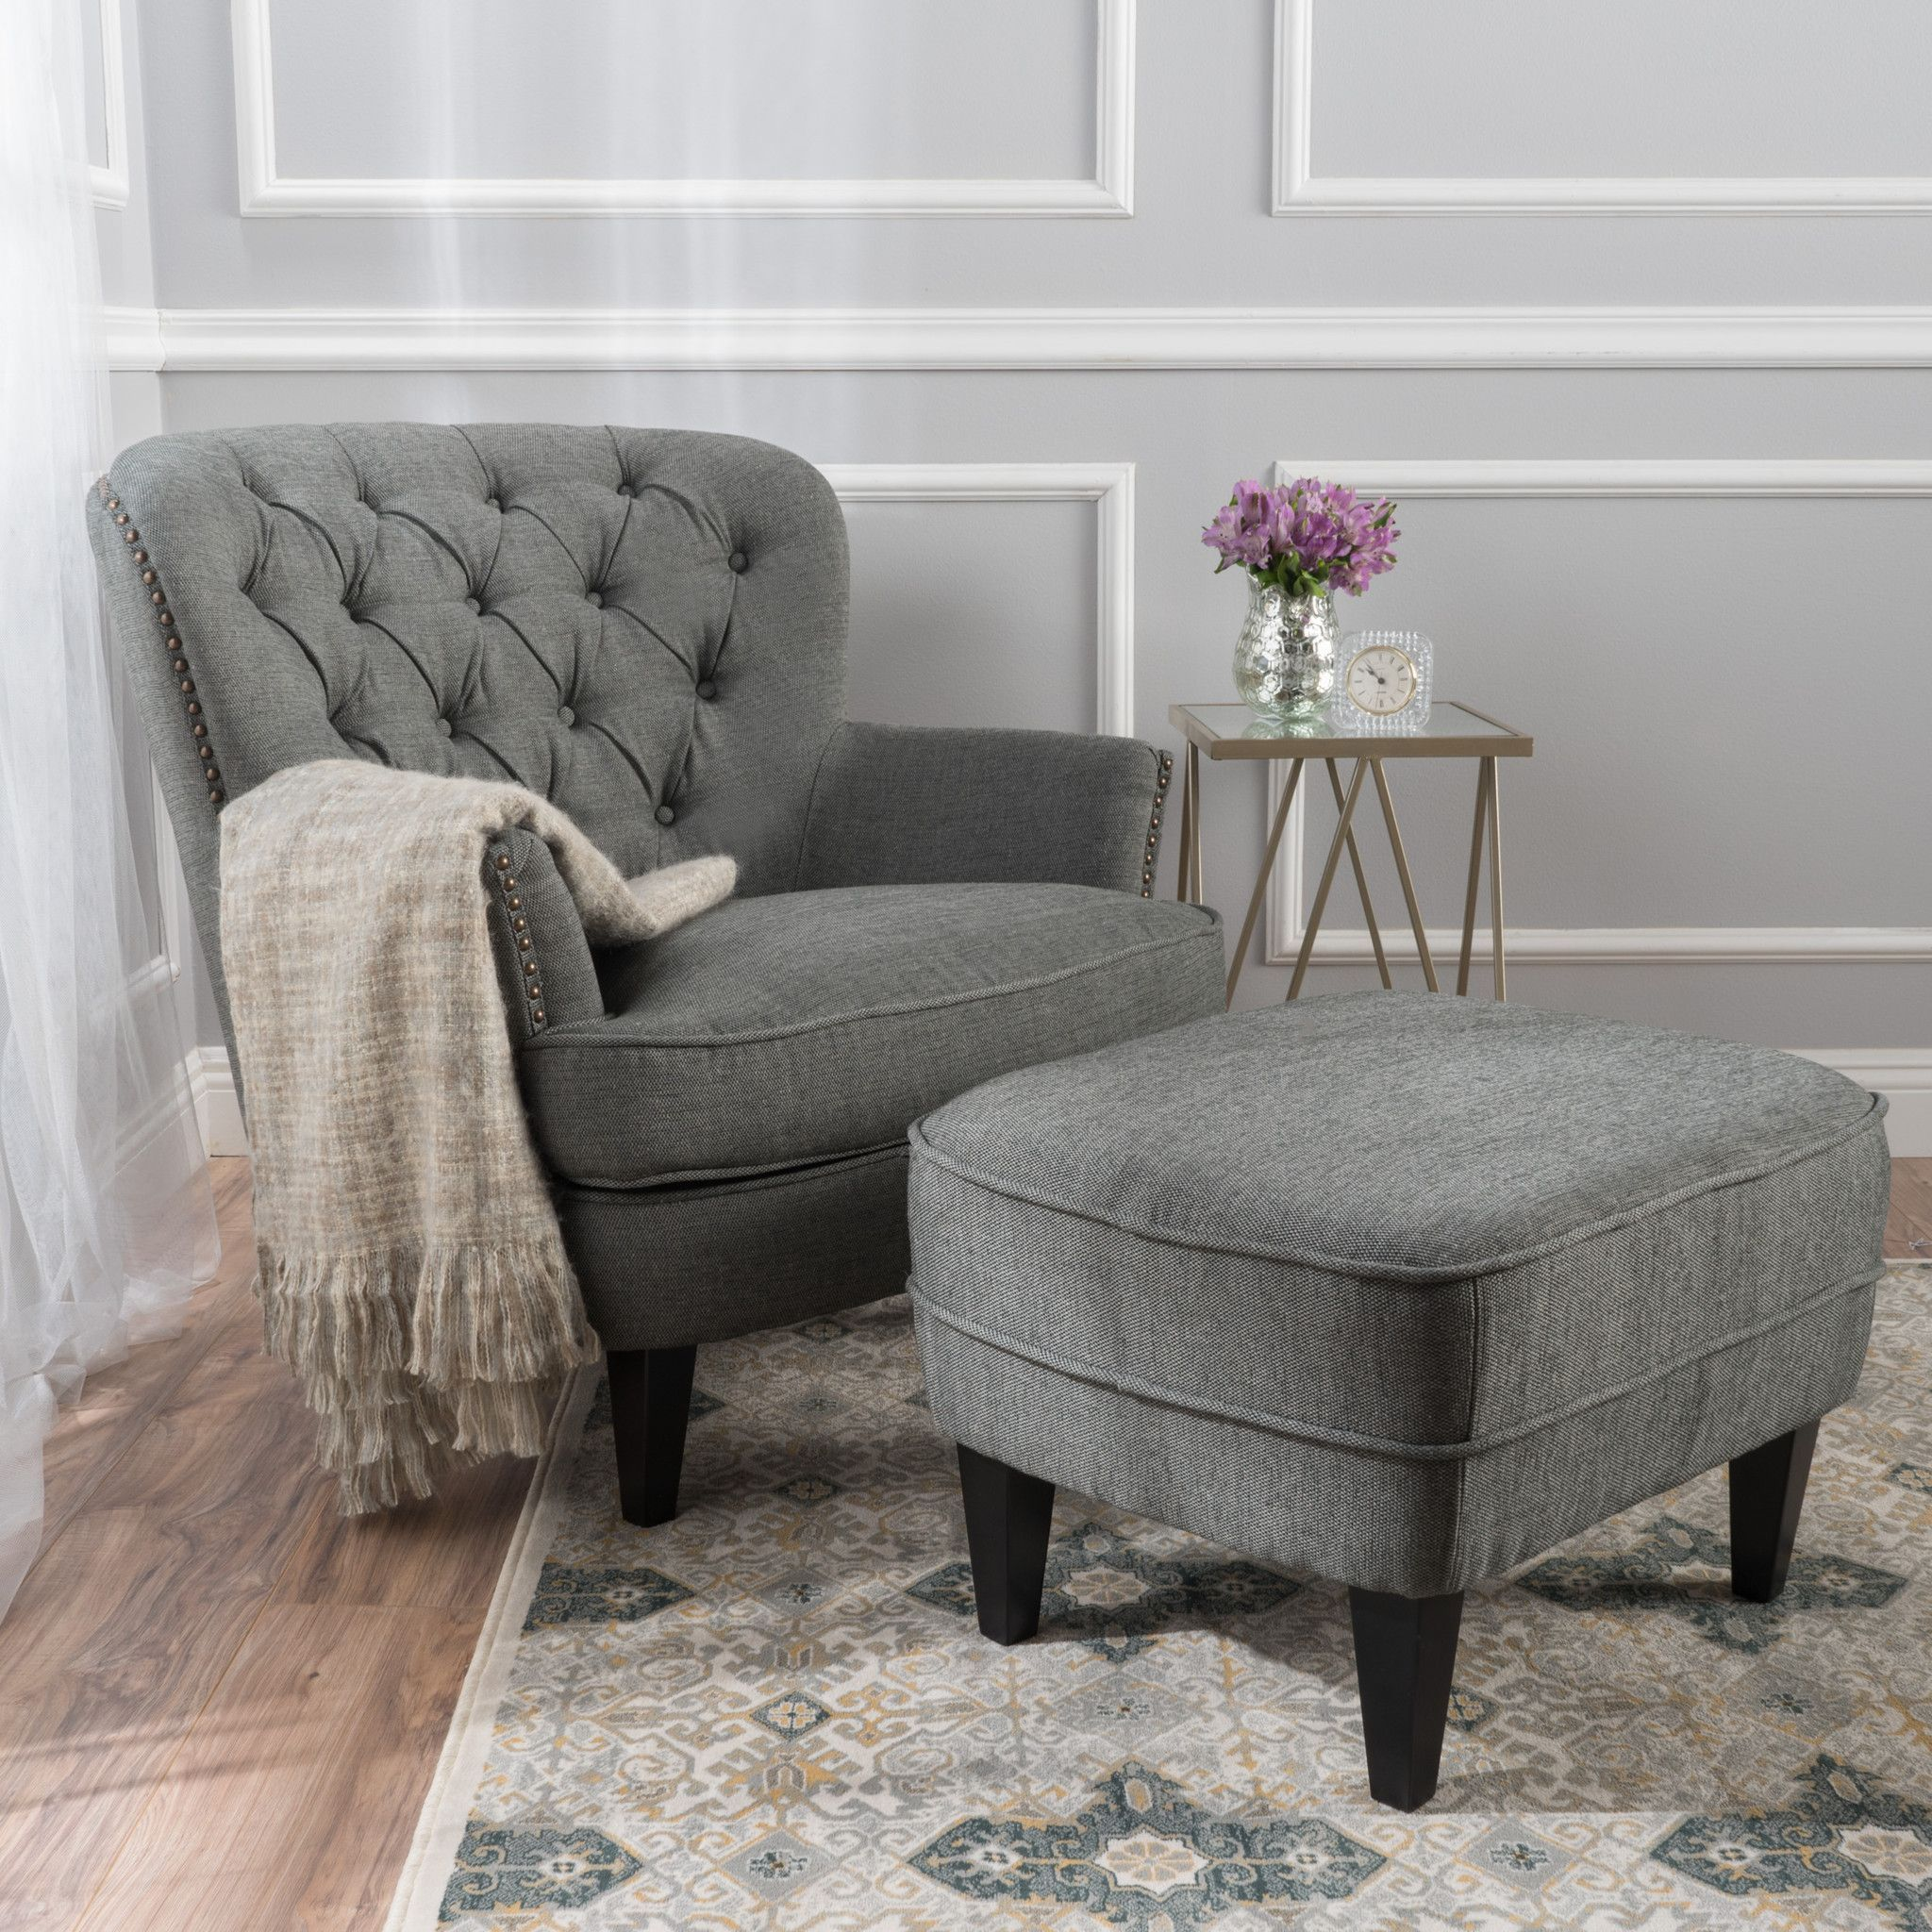 This Club Chair Ottoman Set Is Ideal For Any Room In Your Home. With A  Perfectly Designed Ottoman To Match This Club Chair, You Will Be Lounging  In Style.